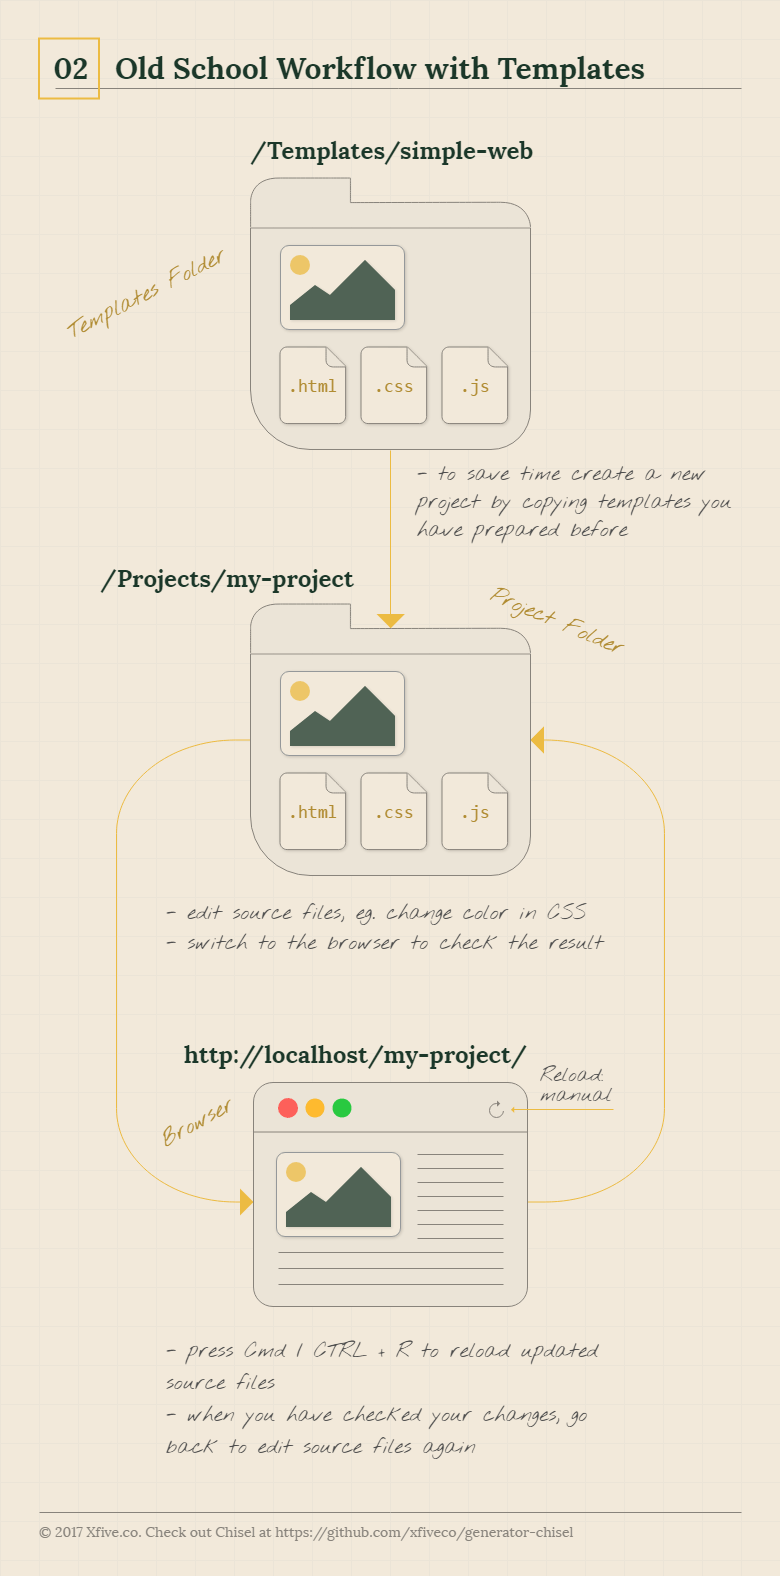 Old School Workflow with Templates